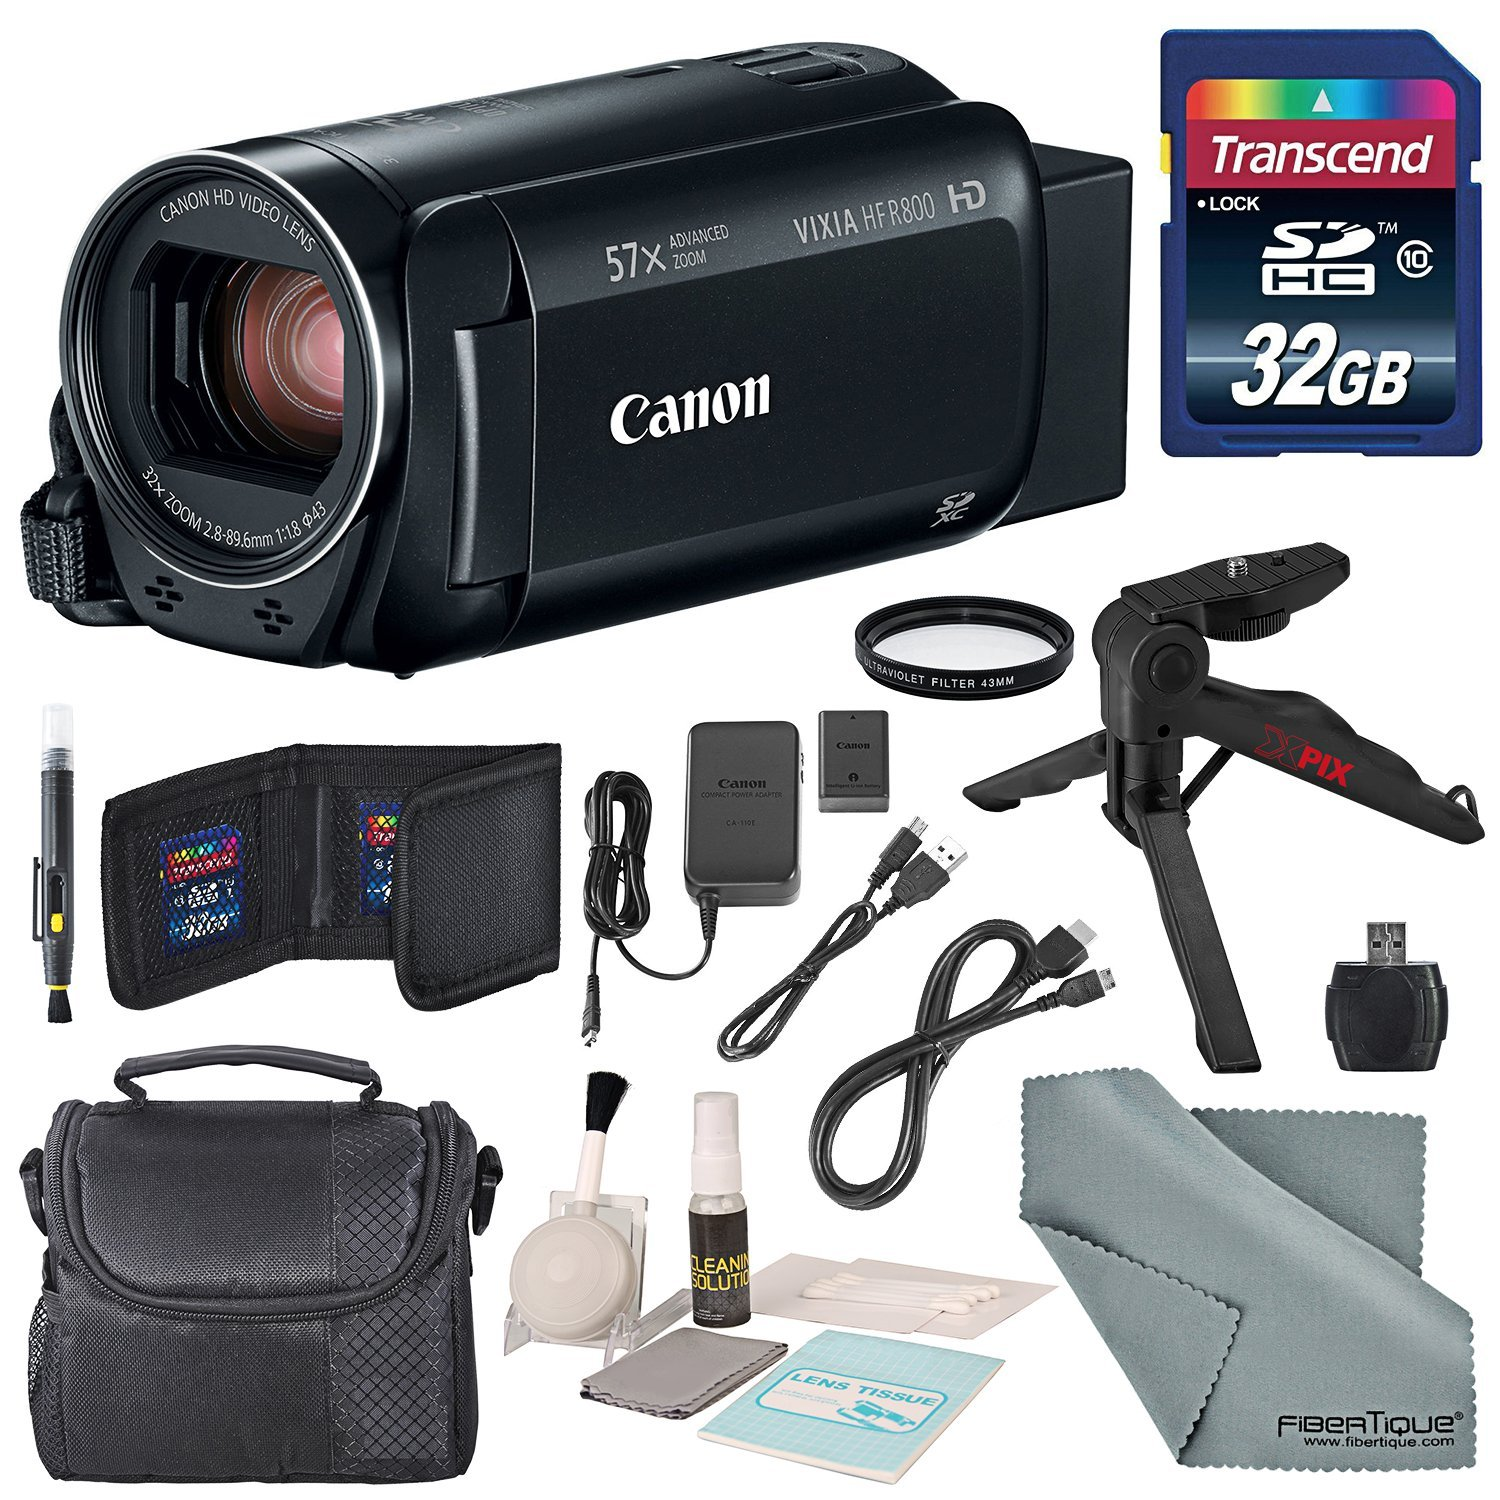 Canon Vixia HF R800 HD Camcorder (Black) Bundle W/ 32GB SD Card, Camcorder Case, Cleaning Accessories and Fibertique Cleaning Cloth by Photo Savings